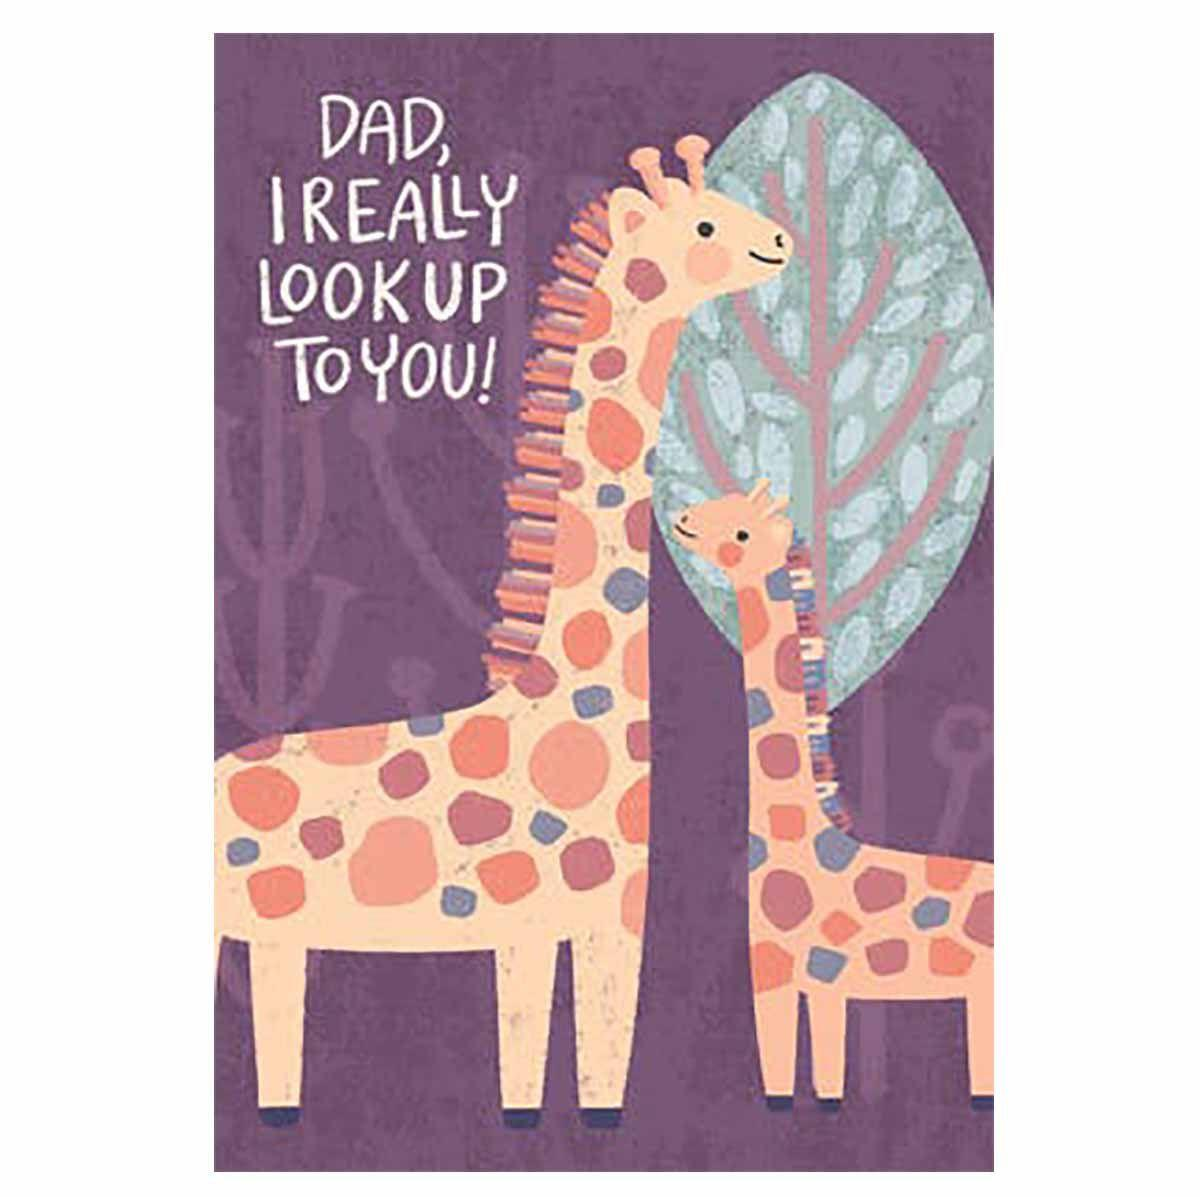 """<p>This adorable giraffe card is available as a printable or to be sent as an e-card.</p><p><em>Get the printable from <a href=""""https://www.greetingsisland.com/preview/cards/giraffe-fathers-day/94-18114"""" rel=""""nofollow noopener"""" target=""""_blank"""" data-ylk=""""slk:Greetings Island"""" class=""""link rapid-noclick-resp"""">Greetings Island</a>.</em></p>"""